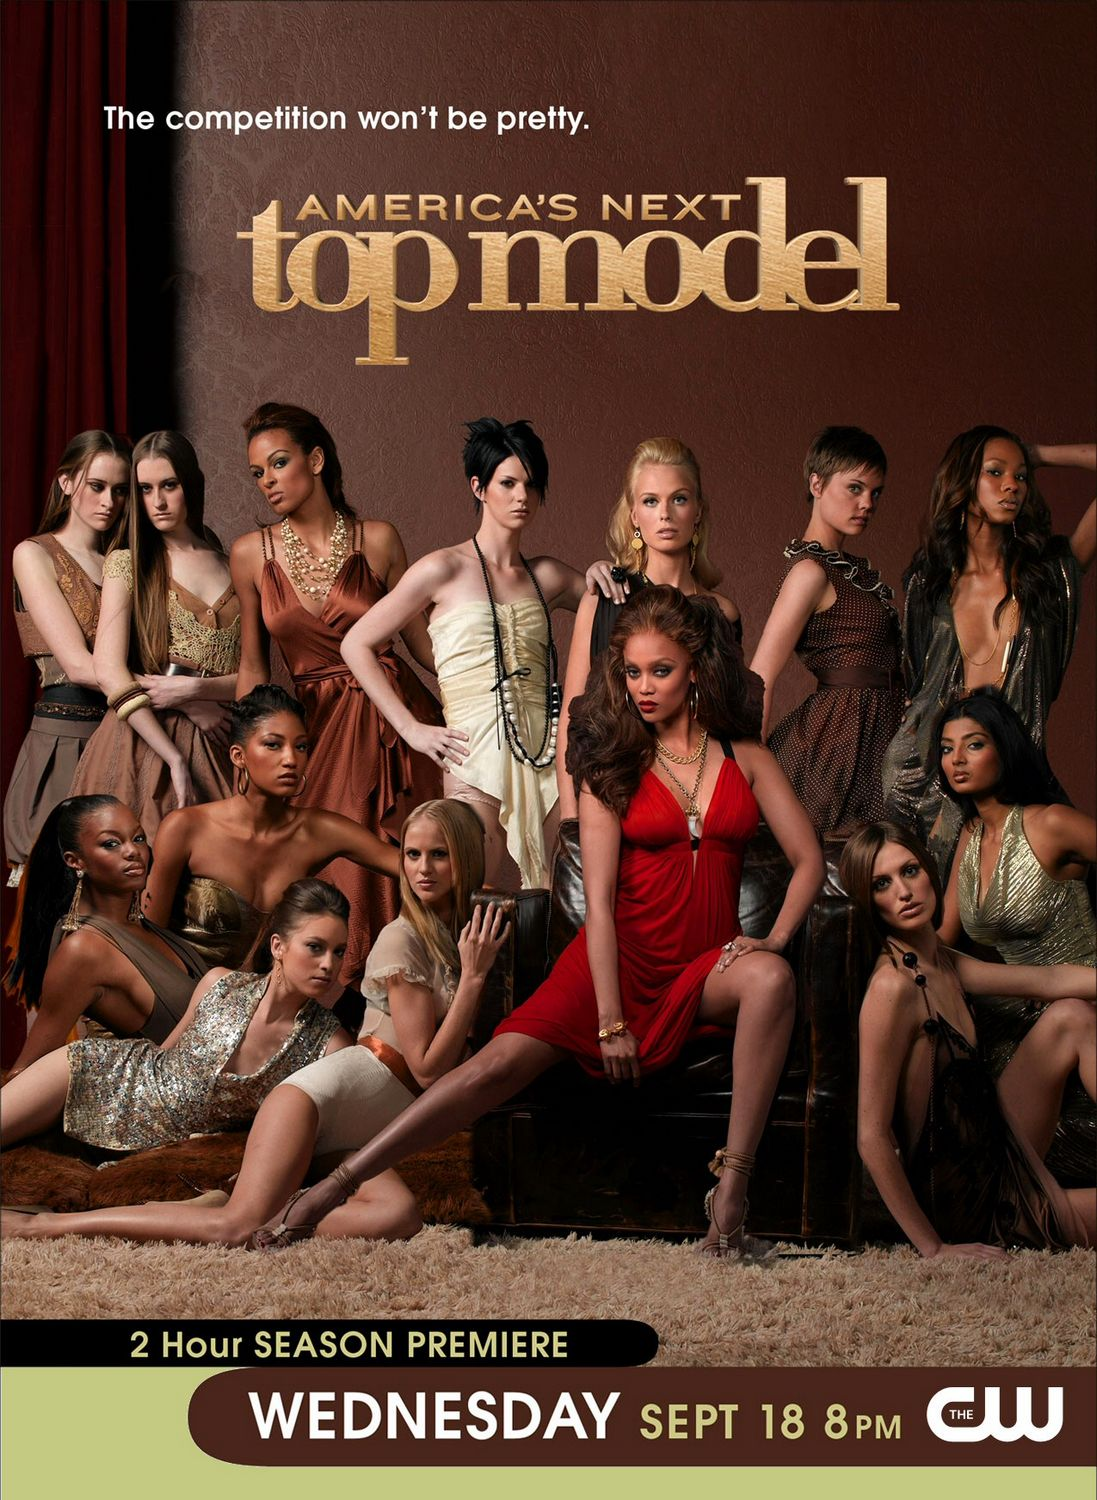 https://antm411.files.wordpress.com/2009/10/cycle7_01.jpg